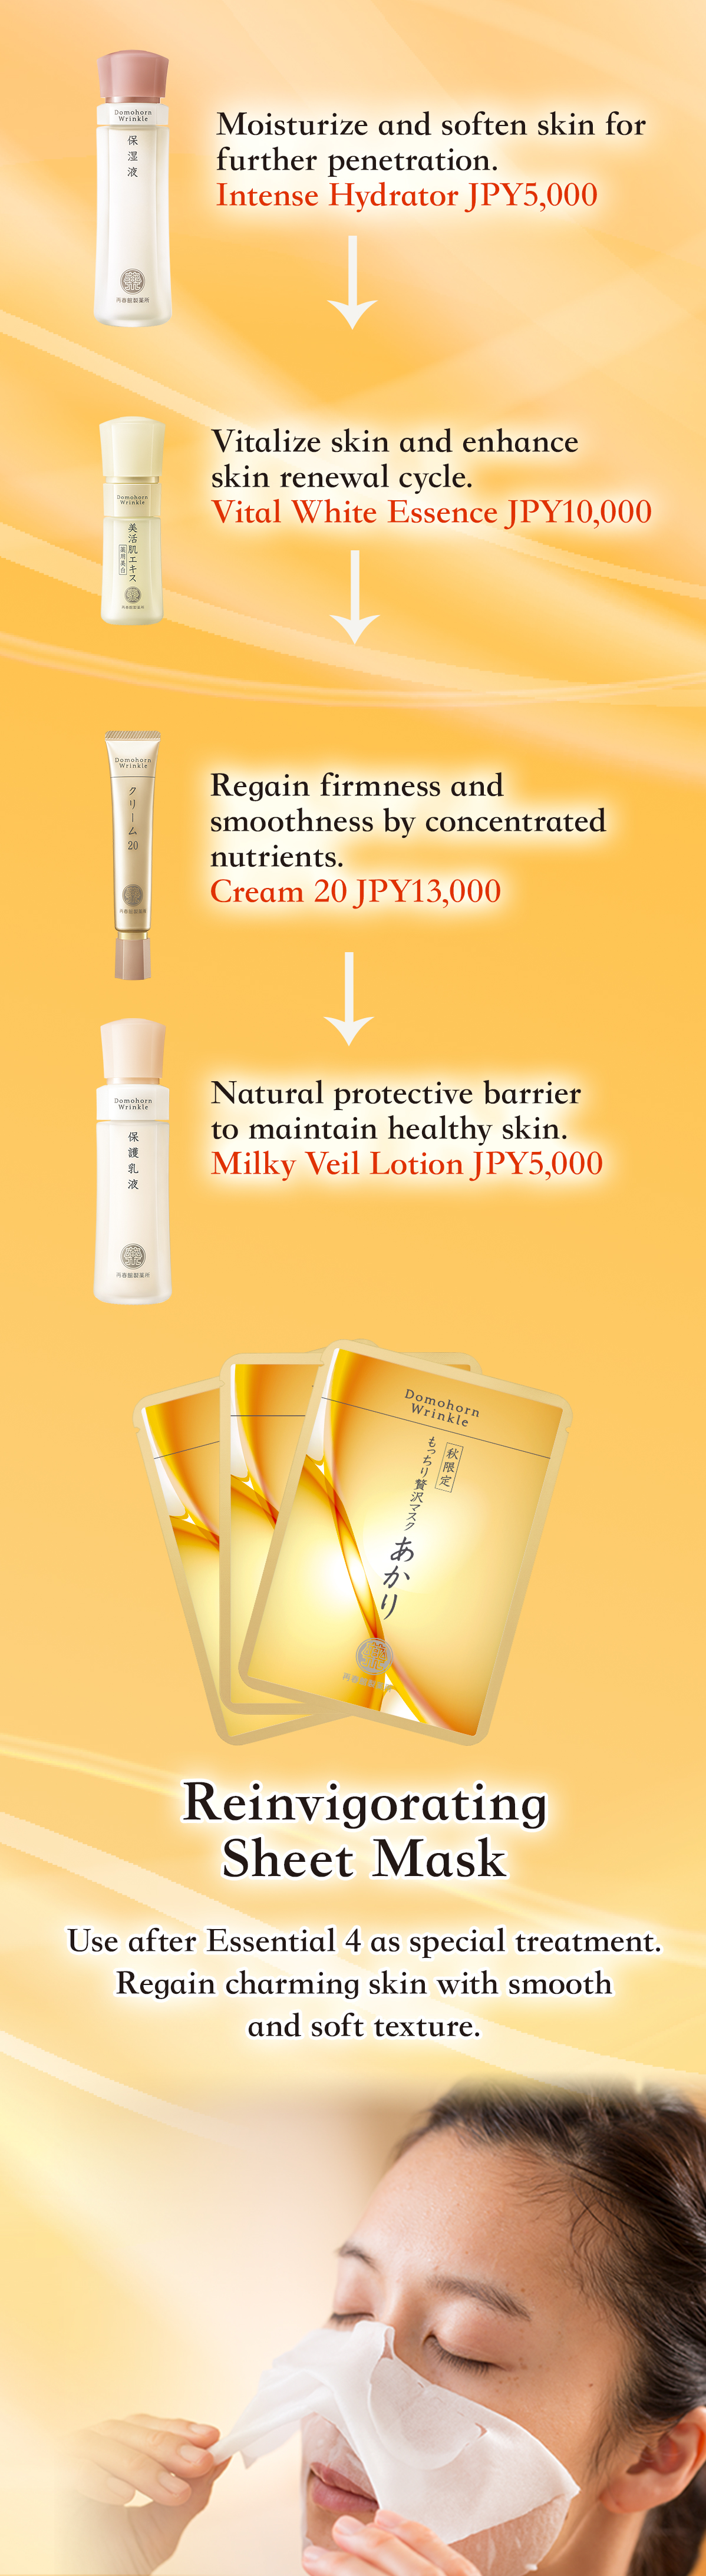 Moisturize and soften skin for further penetration. Intense Hydrator JPY5,000 Vitalize skin and enhance skin renewal cycle. Vital White Essence JPY10,000 Regain firmness and smoothness by concentrated nutrients. Cream 20 JPY13,000 Natural protective barrier to maintain healthy skin. Milky Veil Lotion JPY5,000 Reinvigorating Sheet Mask Use after Essential 4 as special treatment. Regain charming skin with smooth and soft texture.